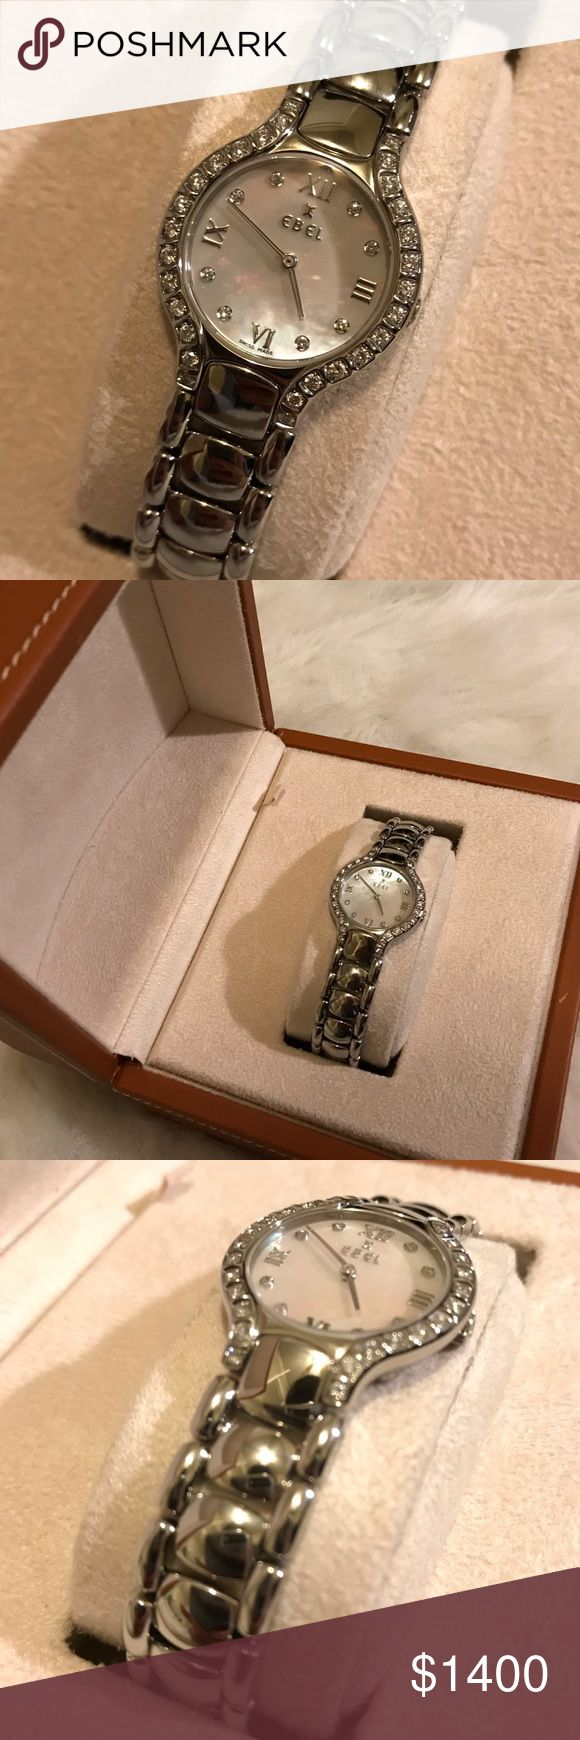 Ebel Beluga Mother of Pearl Stainless Steel Watch Excellent condition and beautiful watch. Please see photos and reach out with questions. Thank you! Ebel Accessories Watches